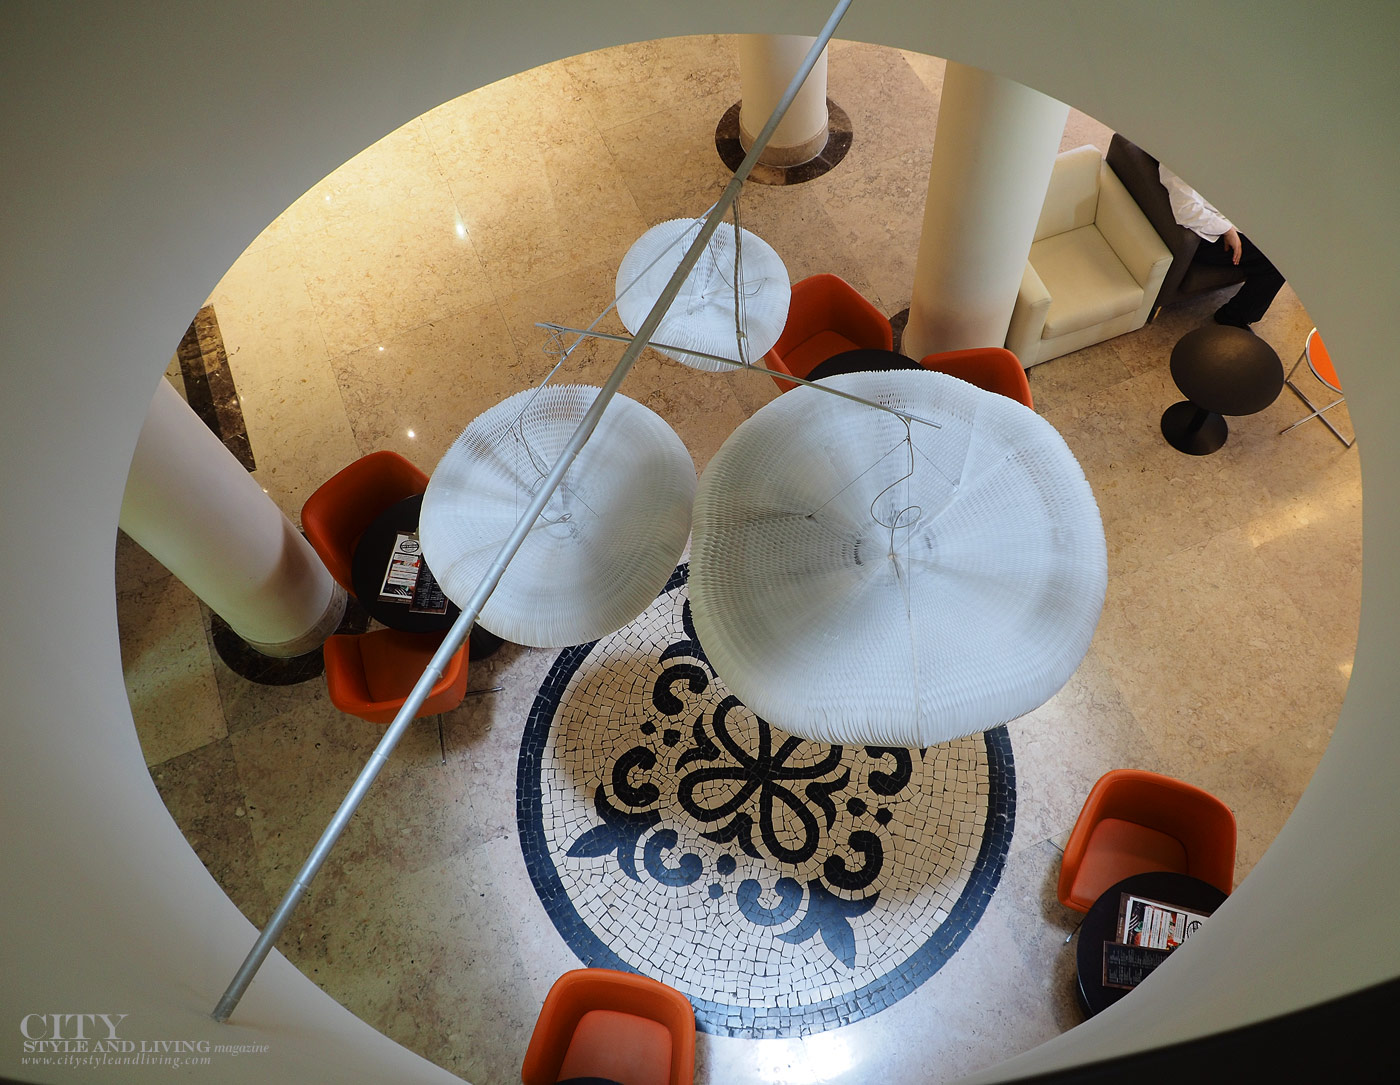 City Style and Living Magazine Travel Portugal Hotel Mercure centro porto lobby